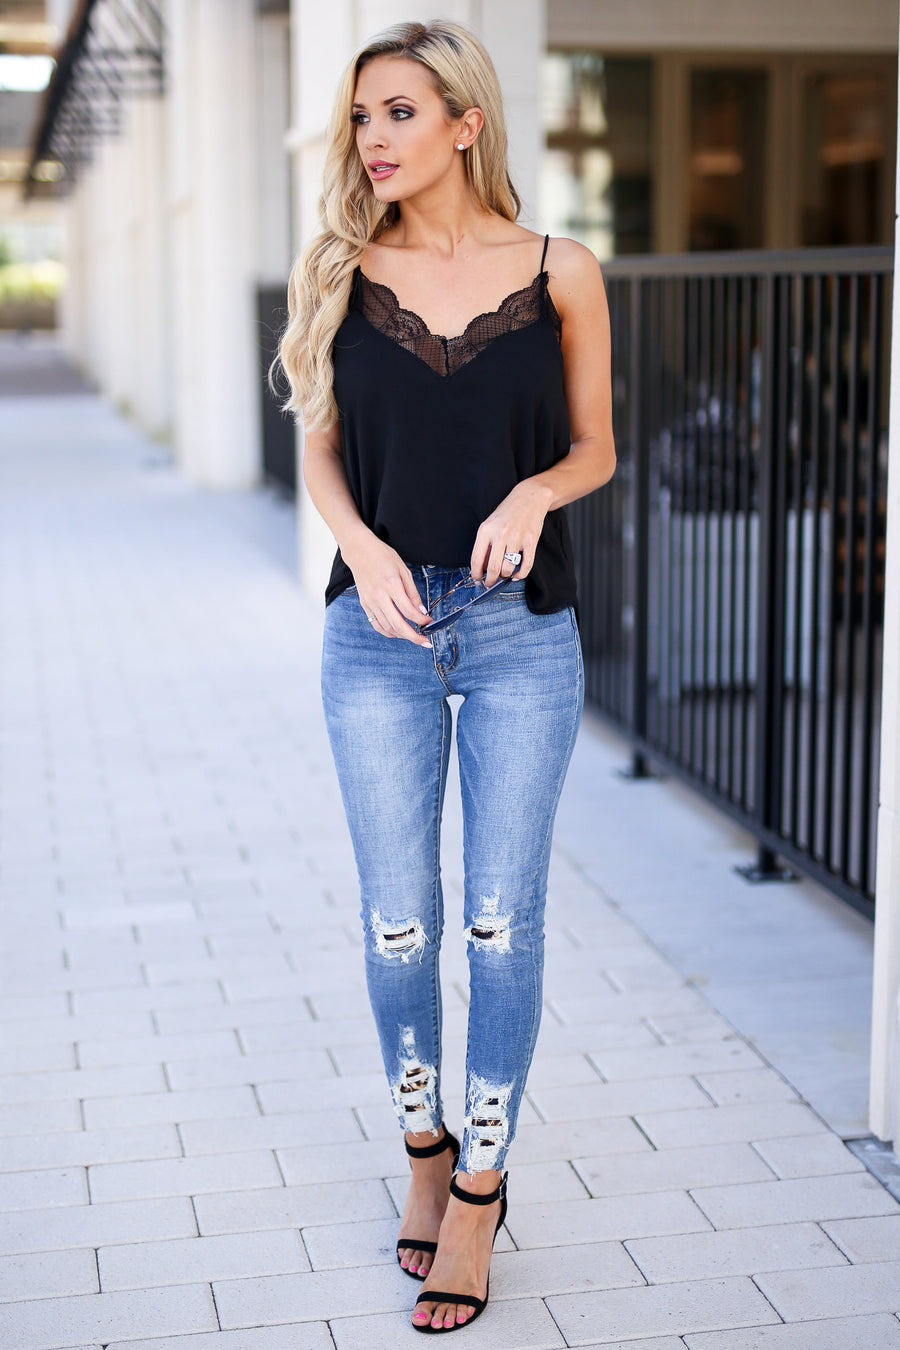 KAN CAN Let's Talk Leopard Skinny Jeans - Medium Wash distressed raw hem jeans, leopard patches, closet candy boutique 3